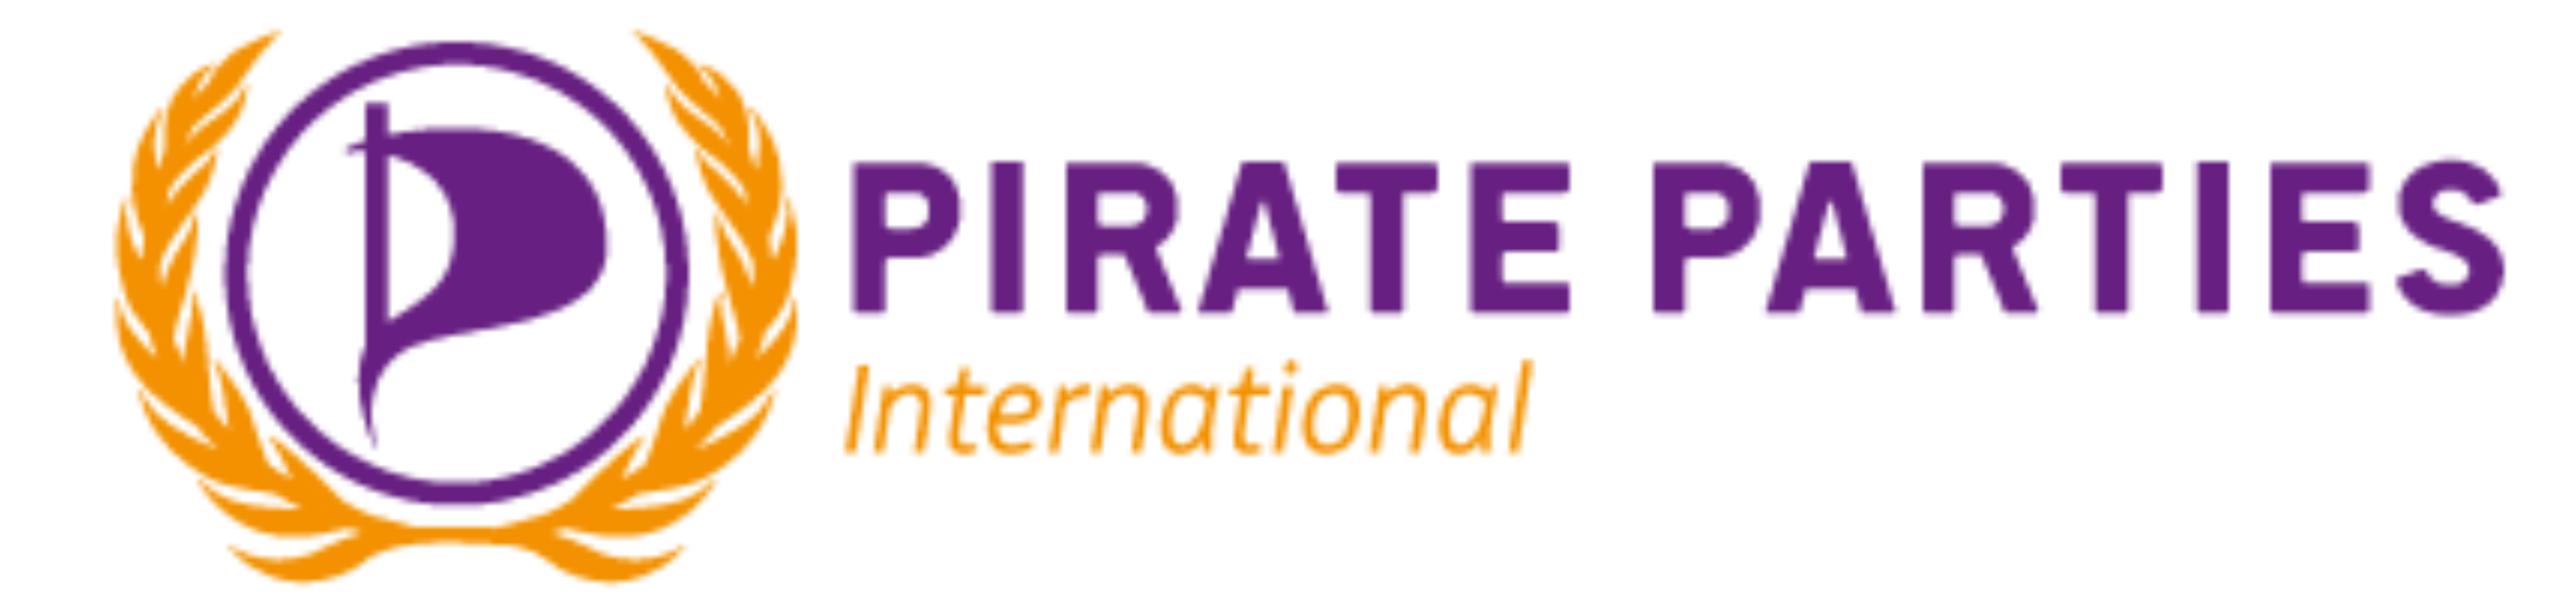 ECOSOC | Pirate Parties International